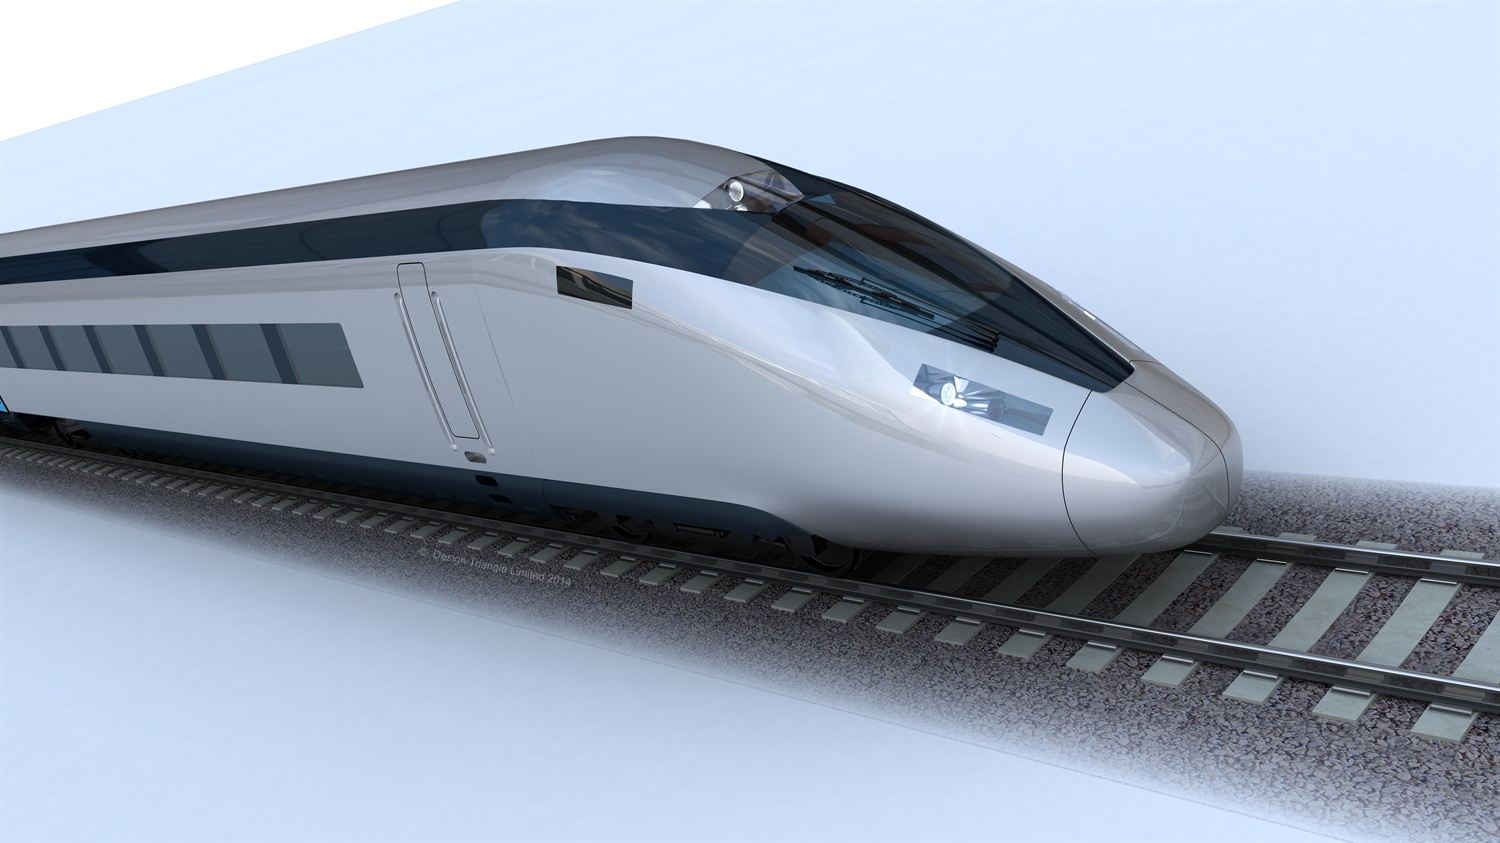 Steve Allen appointed HS2 chief financial officer